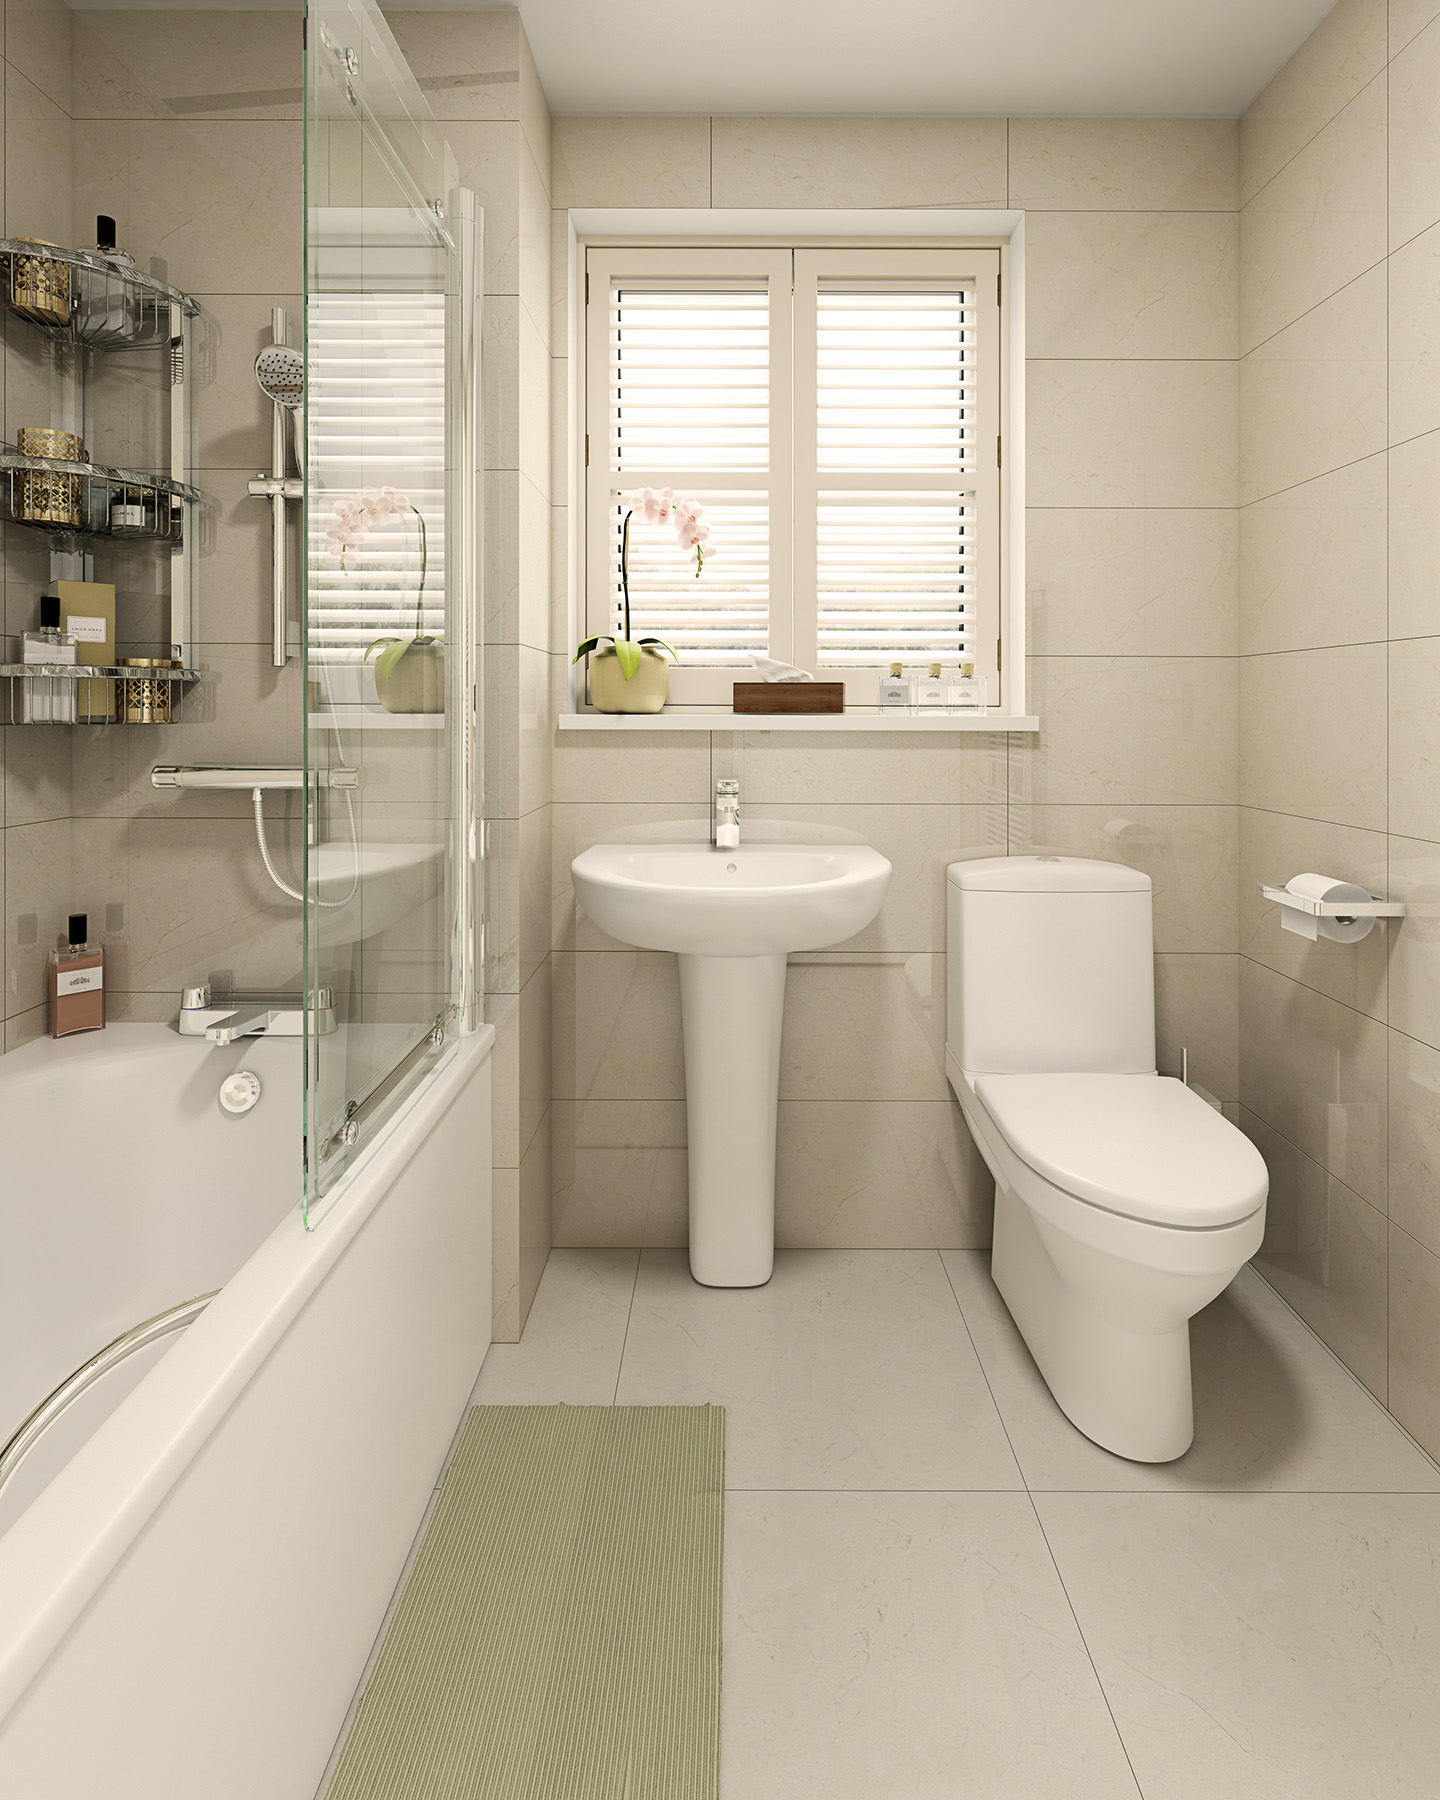 Generic_Type1_Bathroom